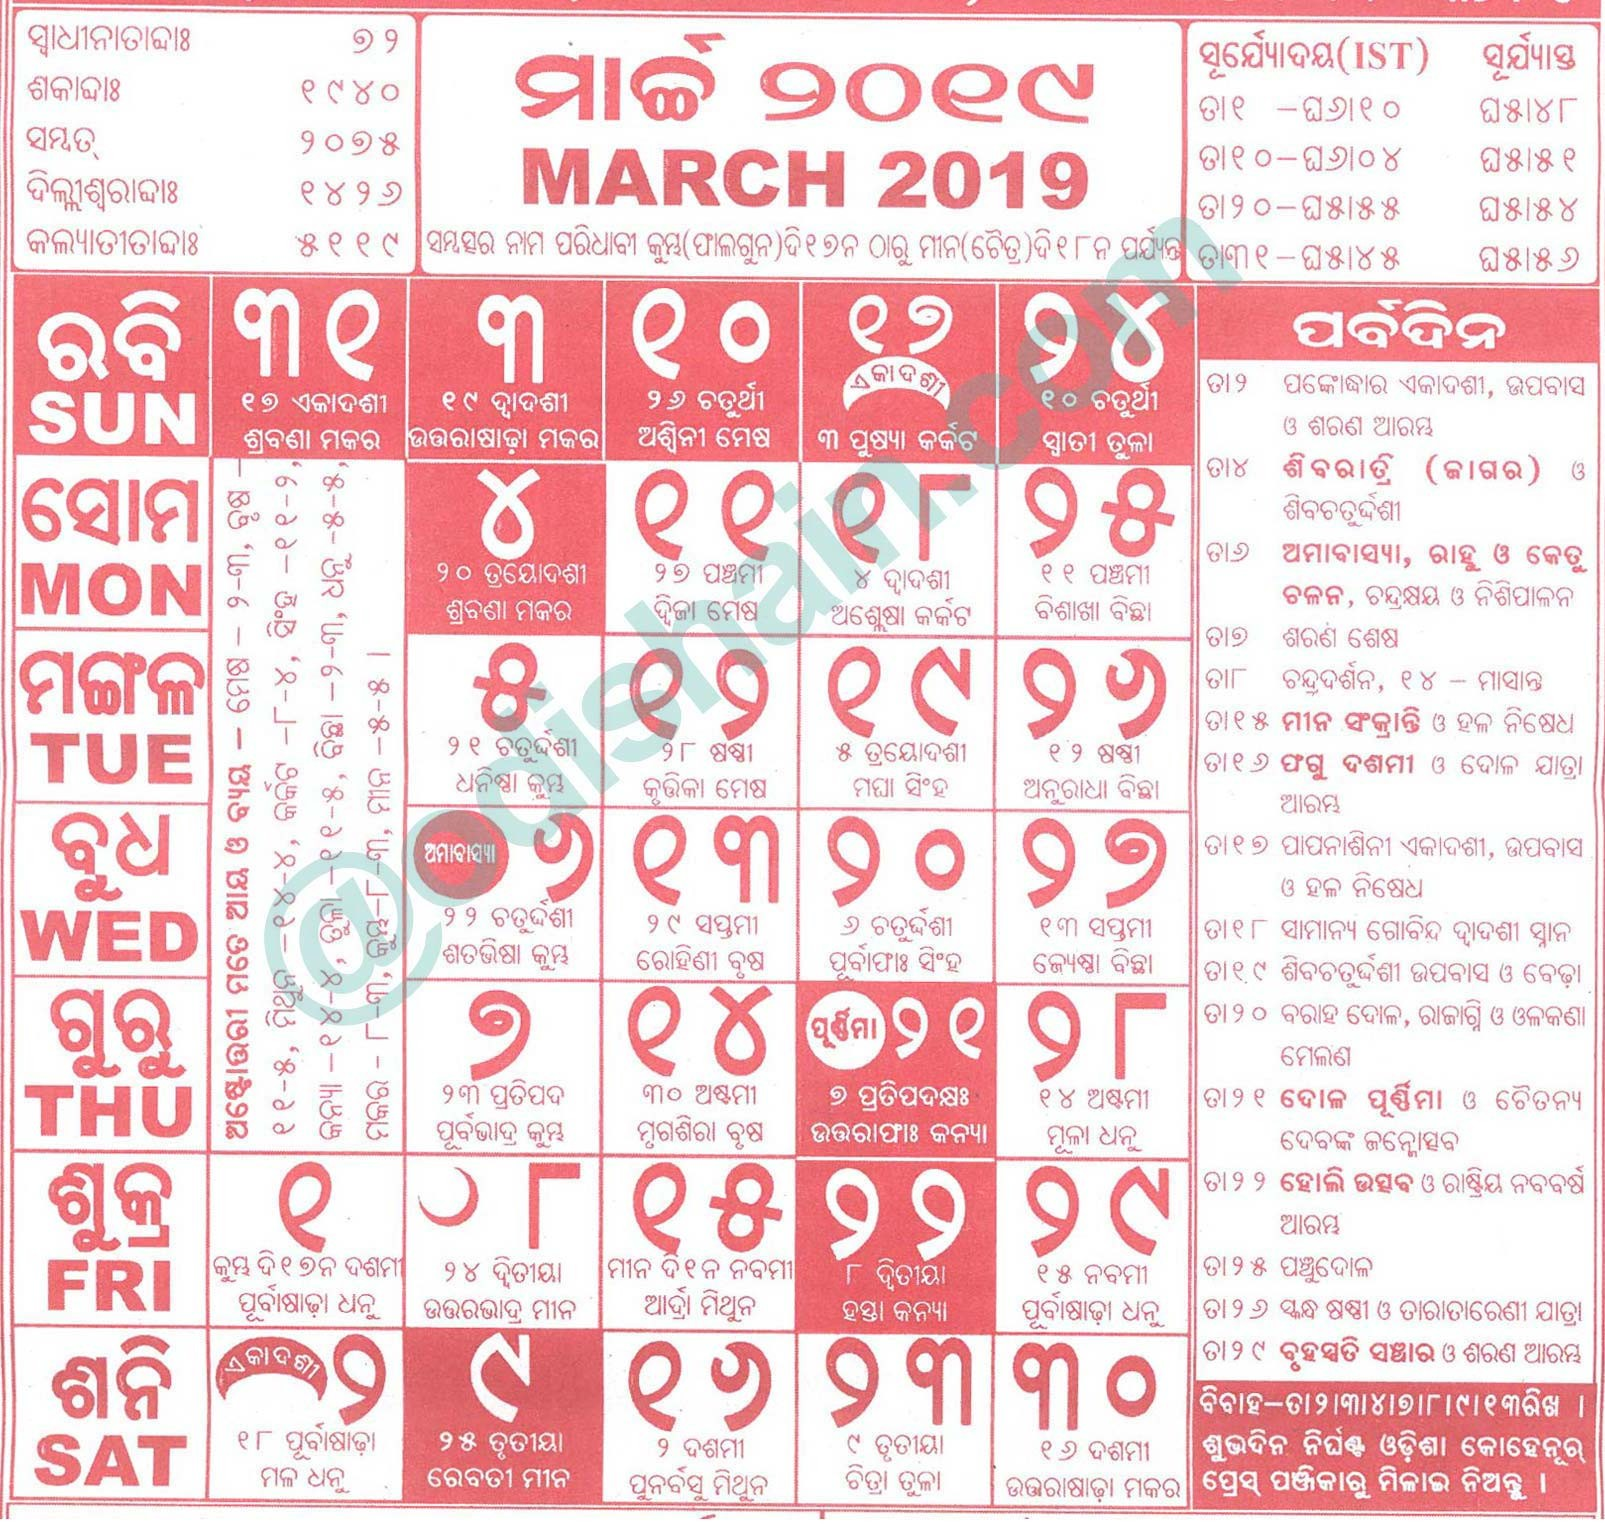 March Calendar 2019 Más Actual Odia Calendar 2019 with March Odishain Of March Calendar 2019 Más Populares February March Calendar 2019 2018 Printable Calendar Store